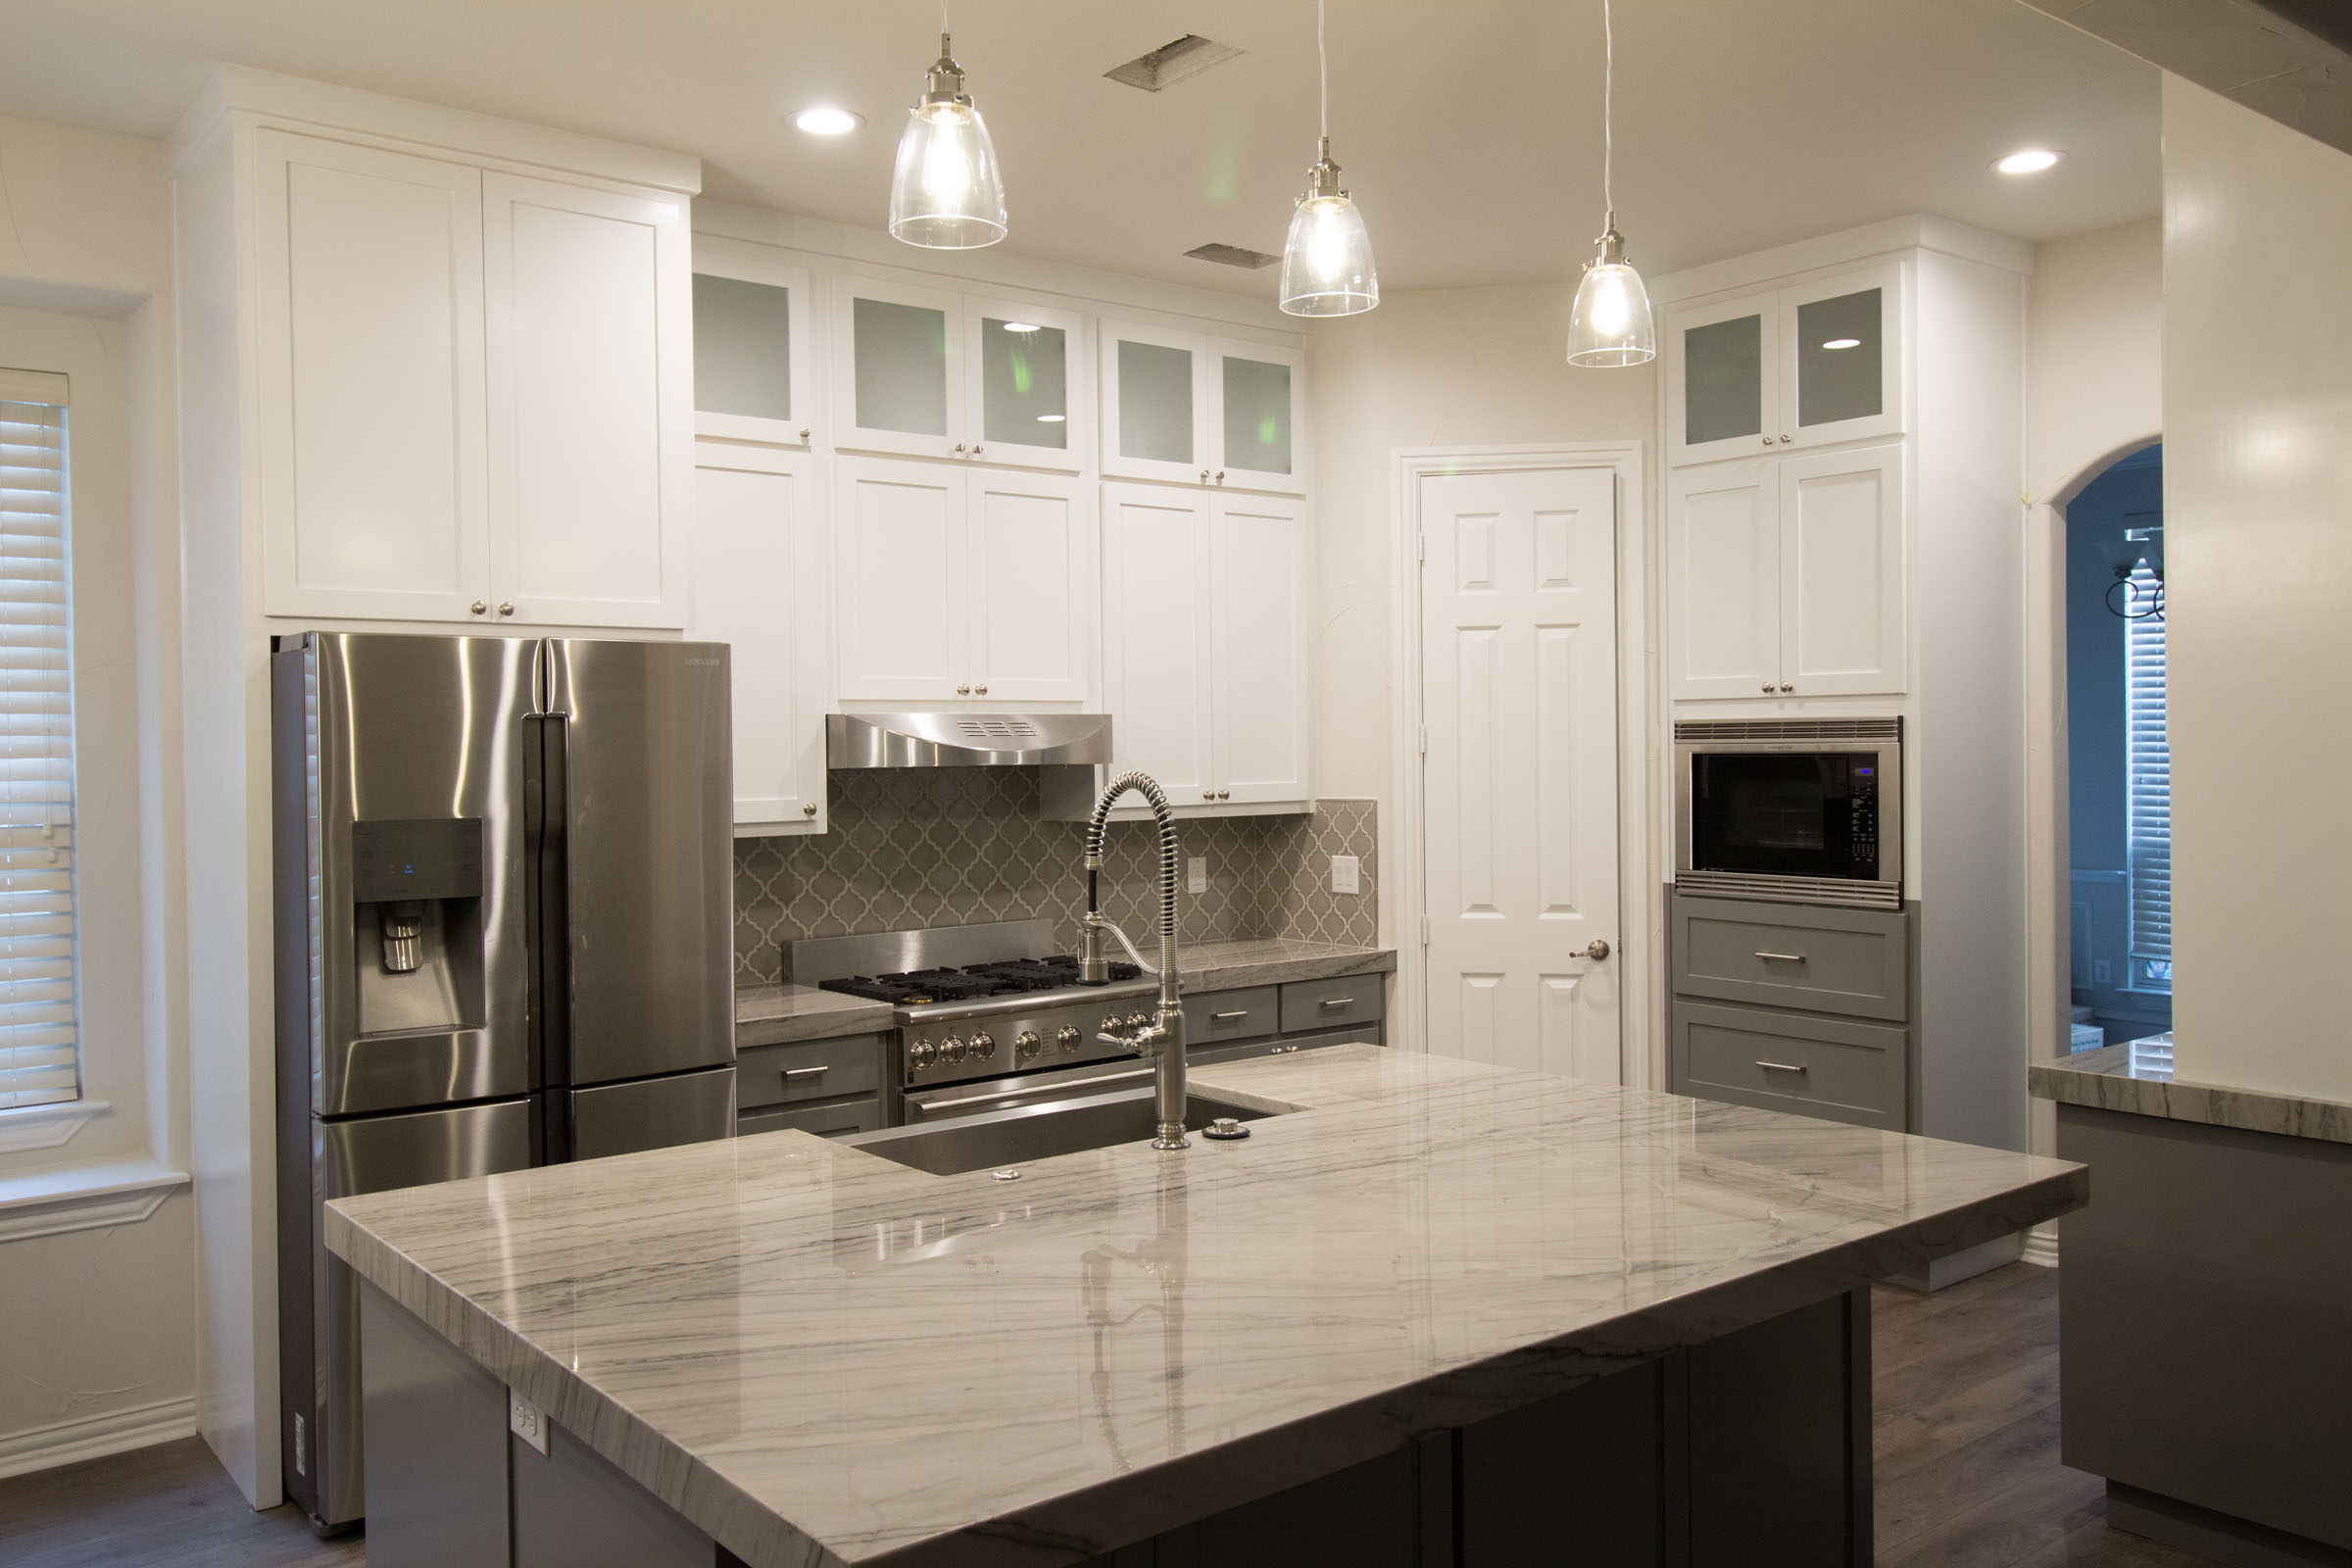 Contemporary kitchen remodel, open concept, kitchen island with sink, spacious and bright